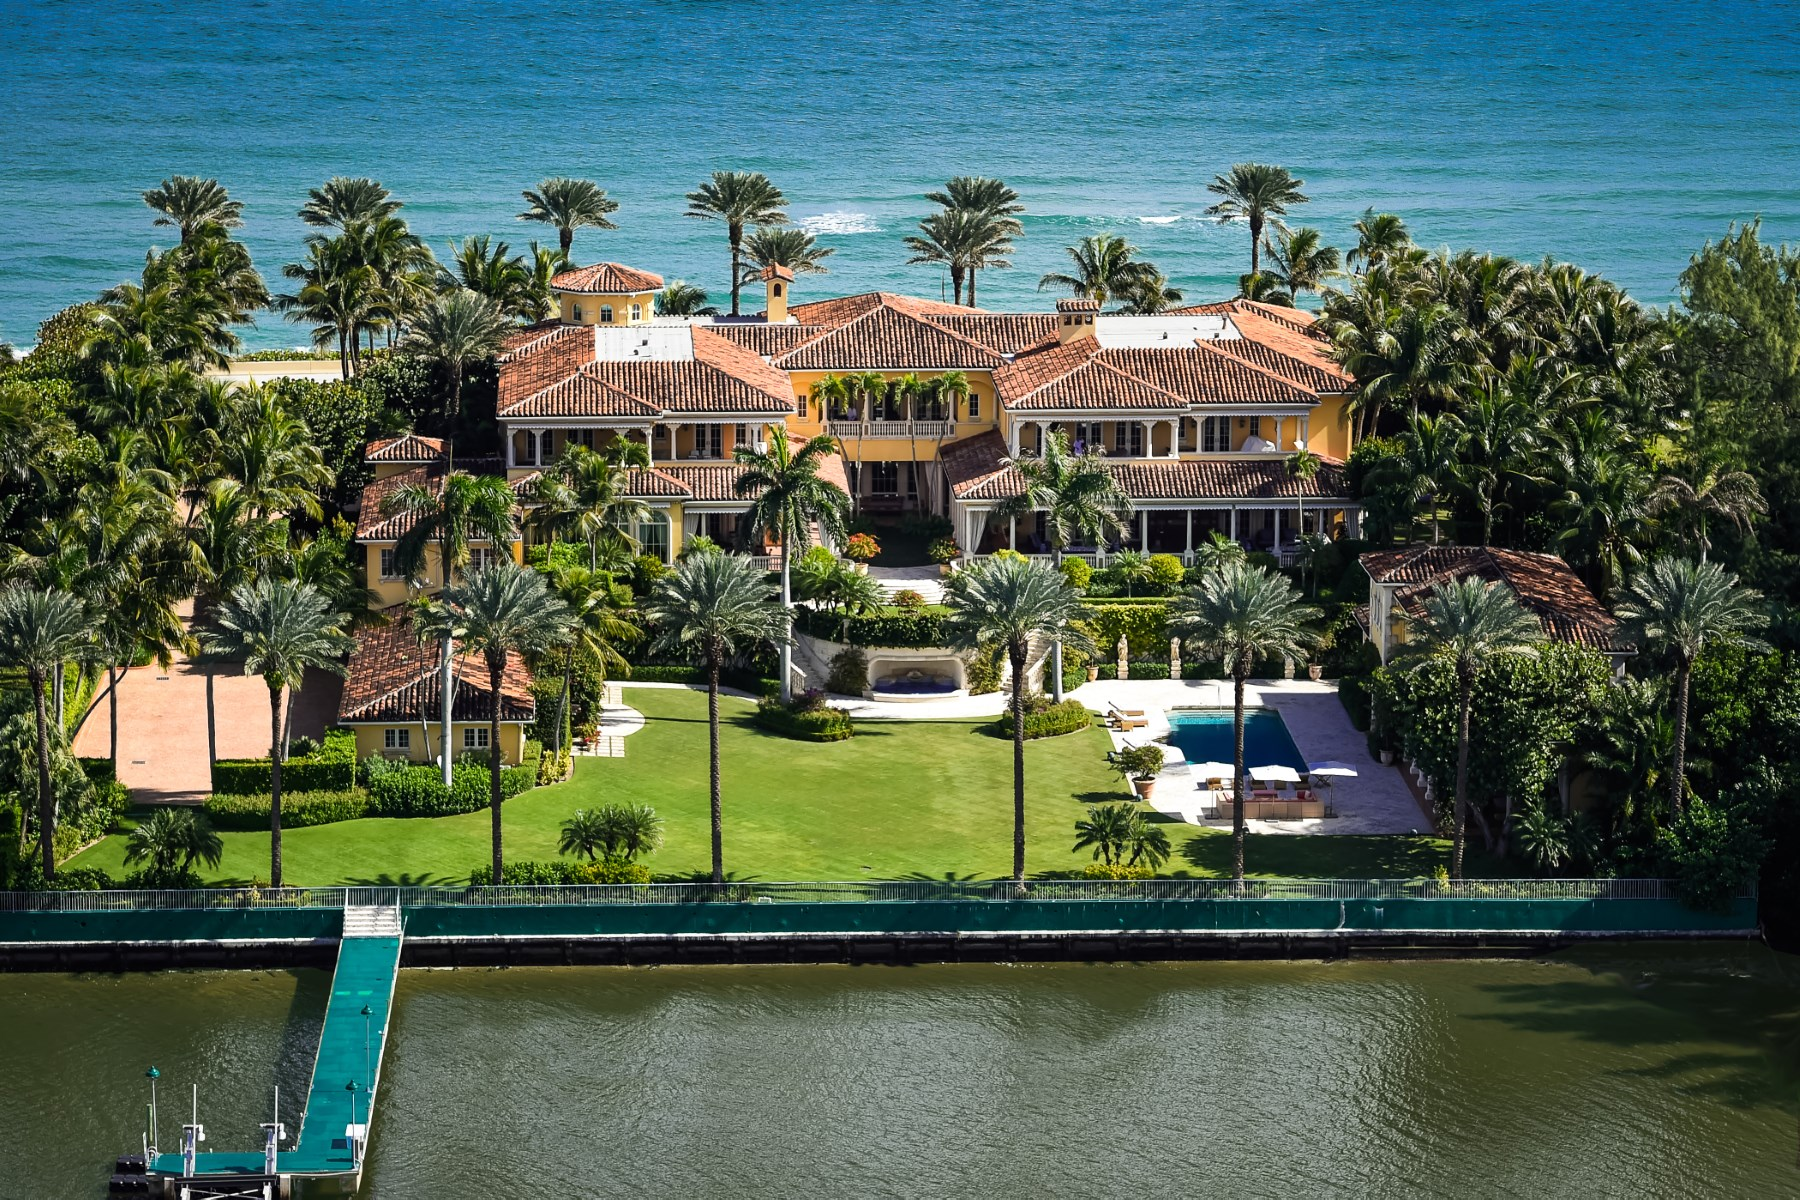 Single Family Home for Sale at Magnificent Mediterranean Palm Beach, Florida 33480 United States